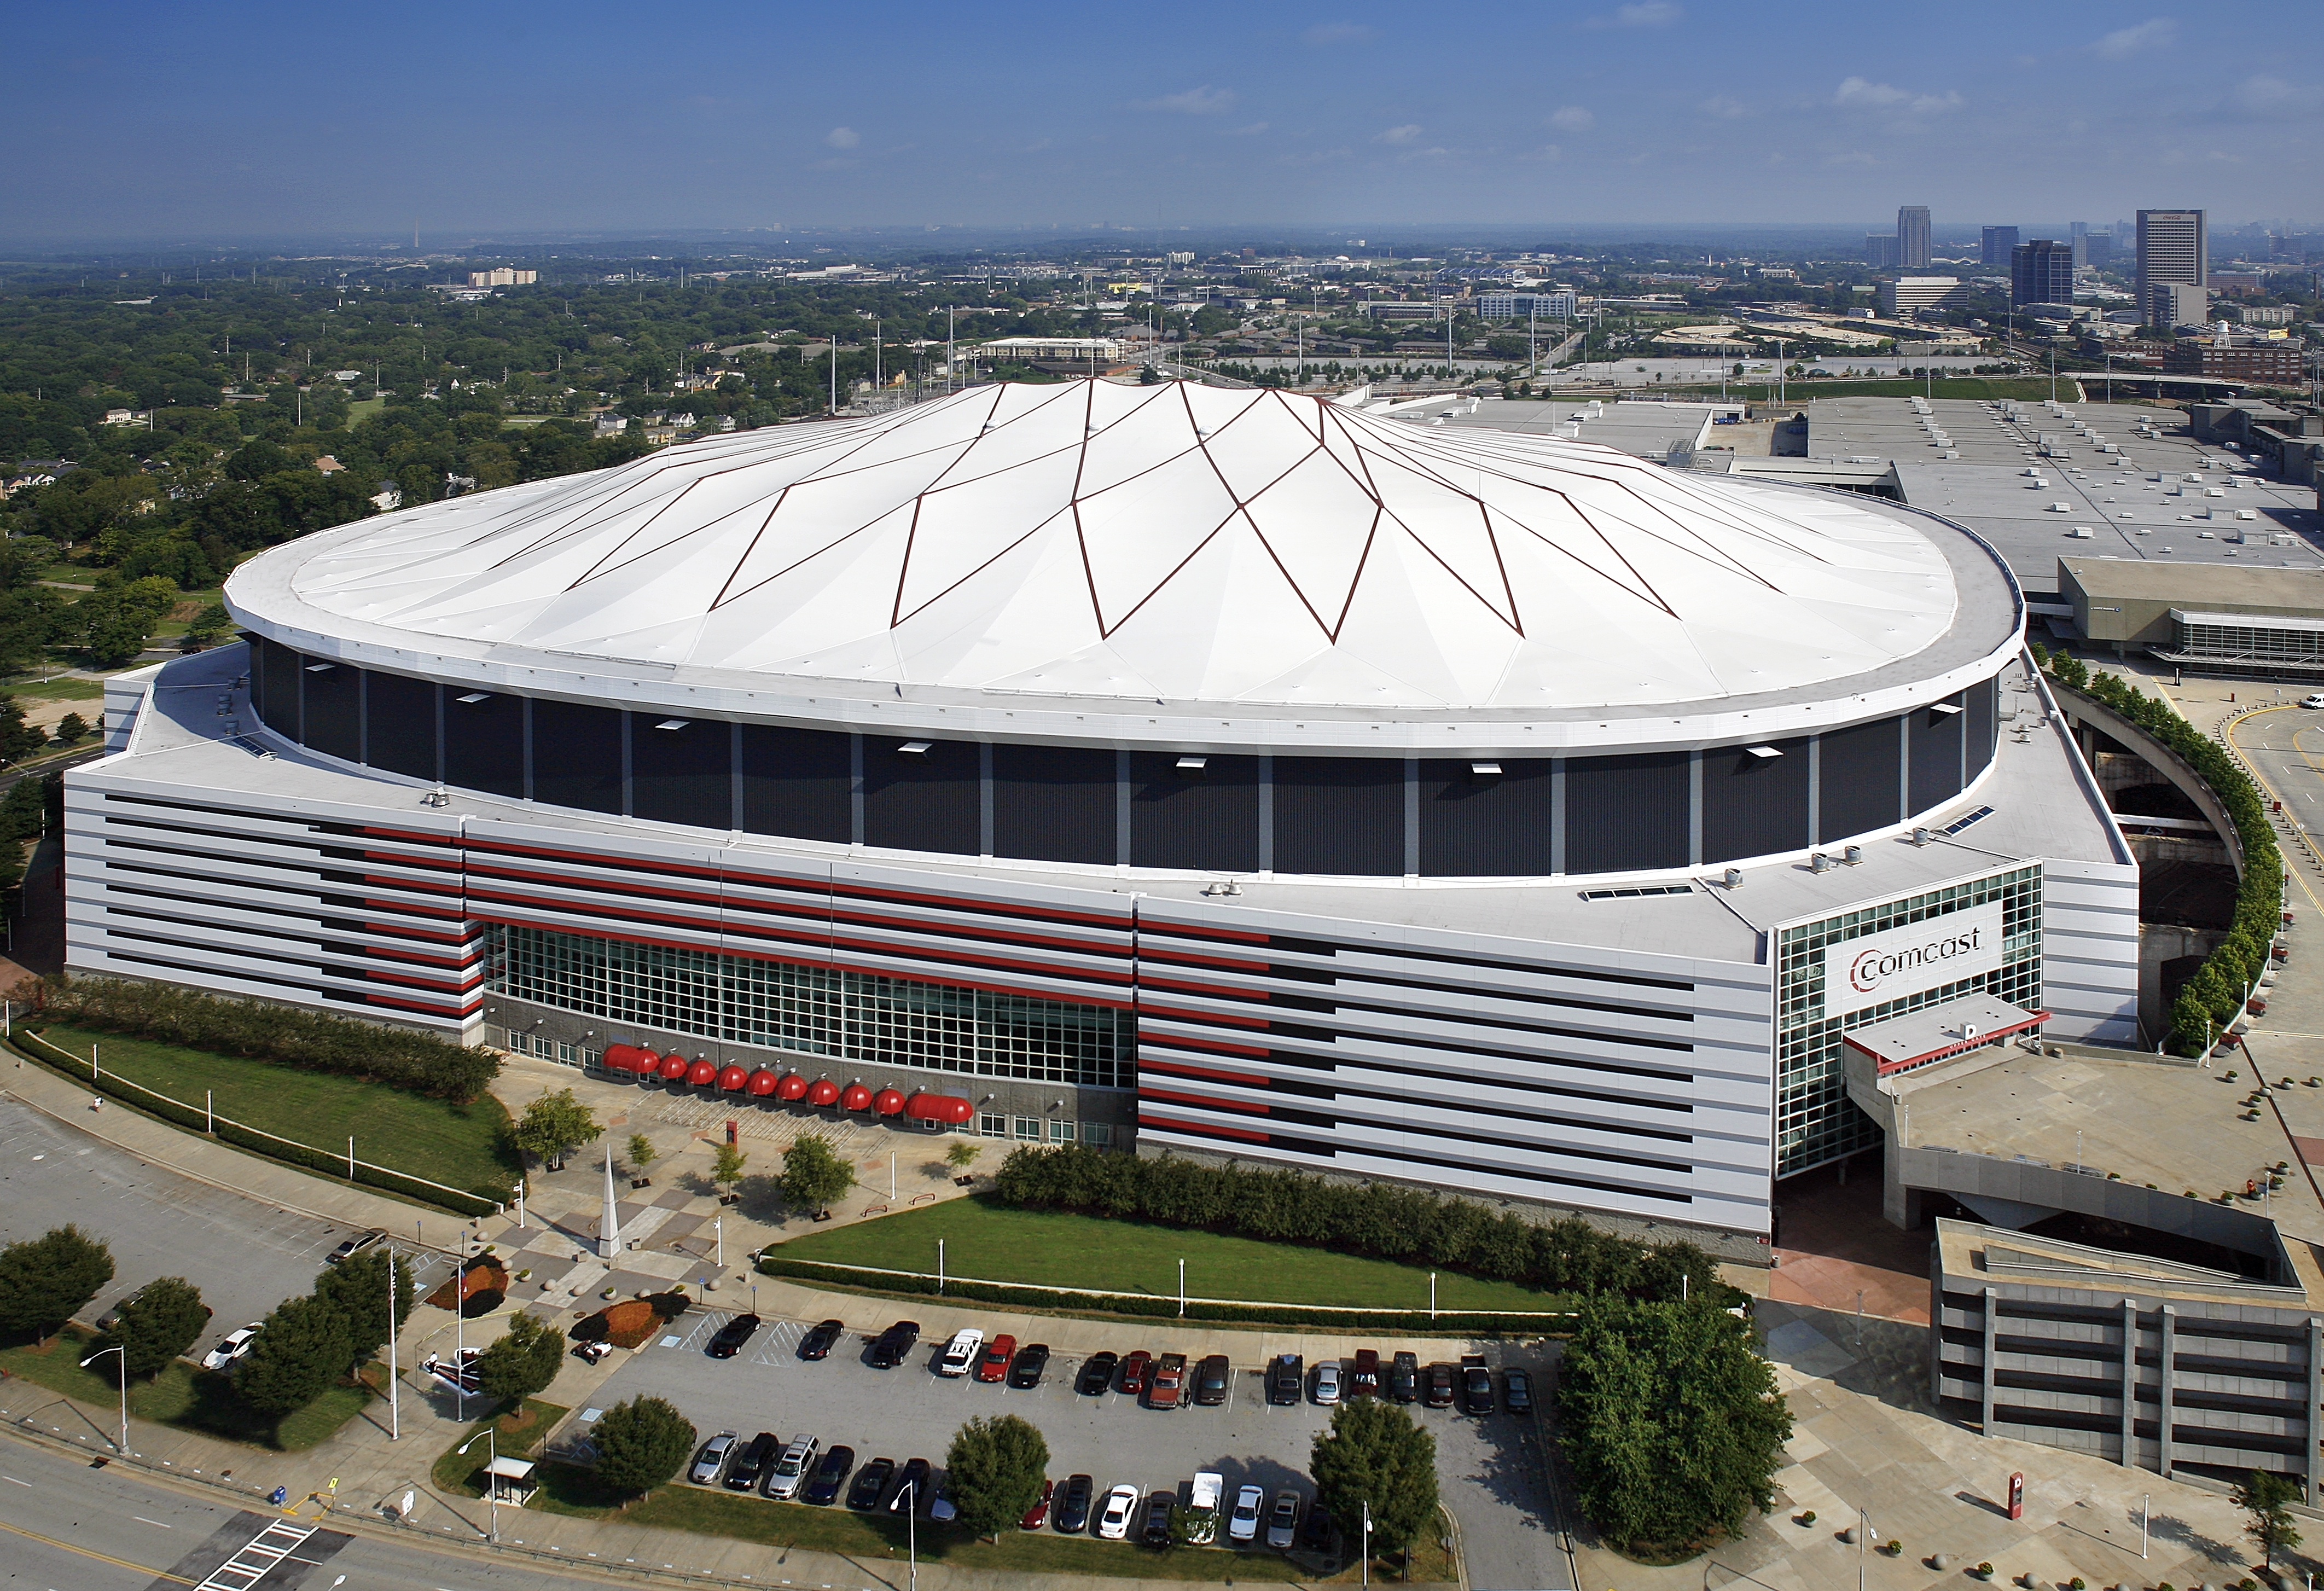 The Georgia Dome is scheduled to{&amp;nbsp;}be imploded on Nov. 20, 2017{&amp;nbsp;}after a new stadium was completed. (Property of TVS, Inc.)<p></p>